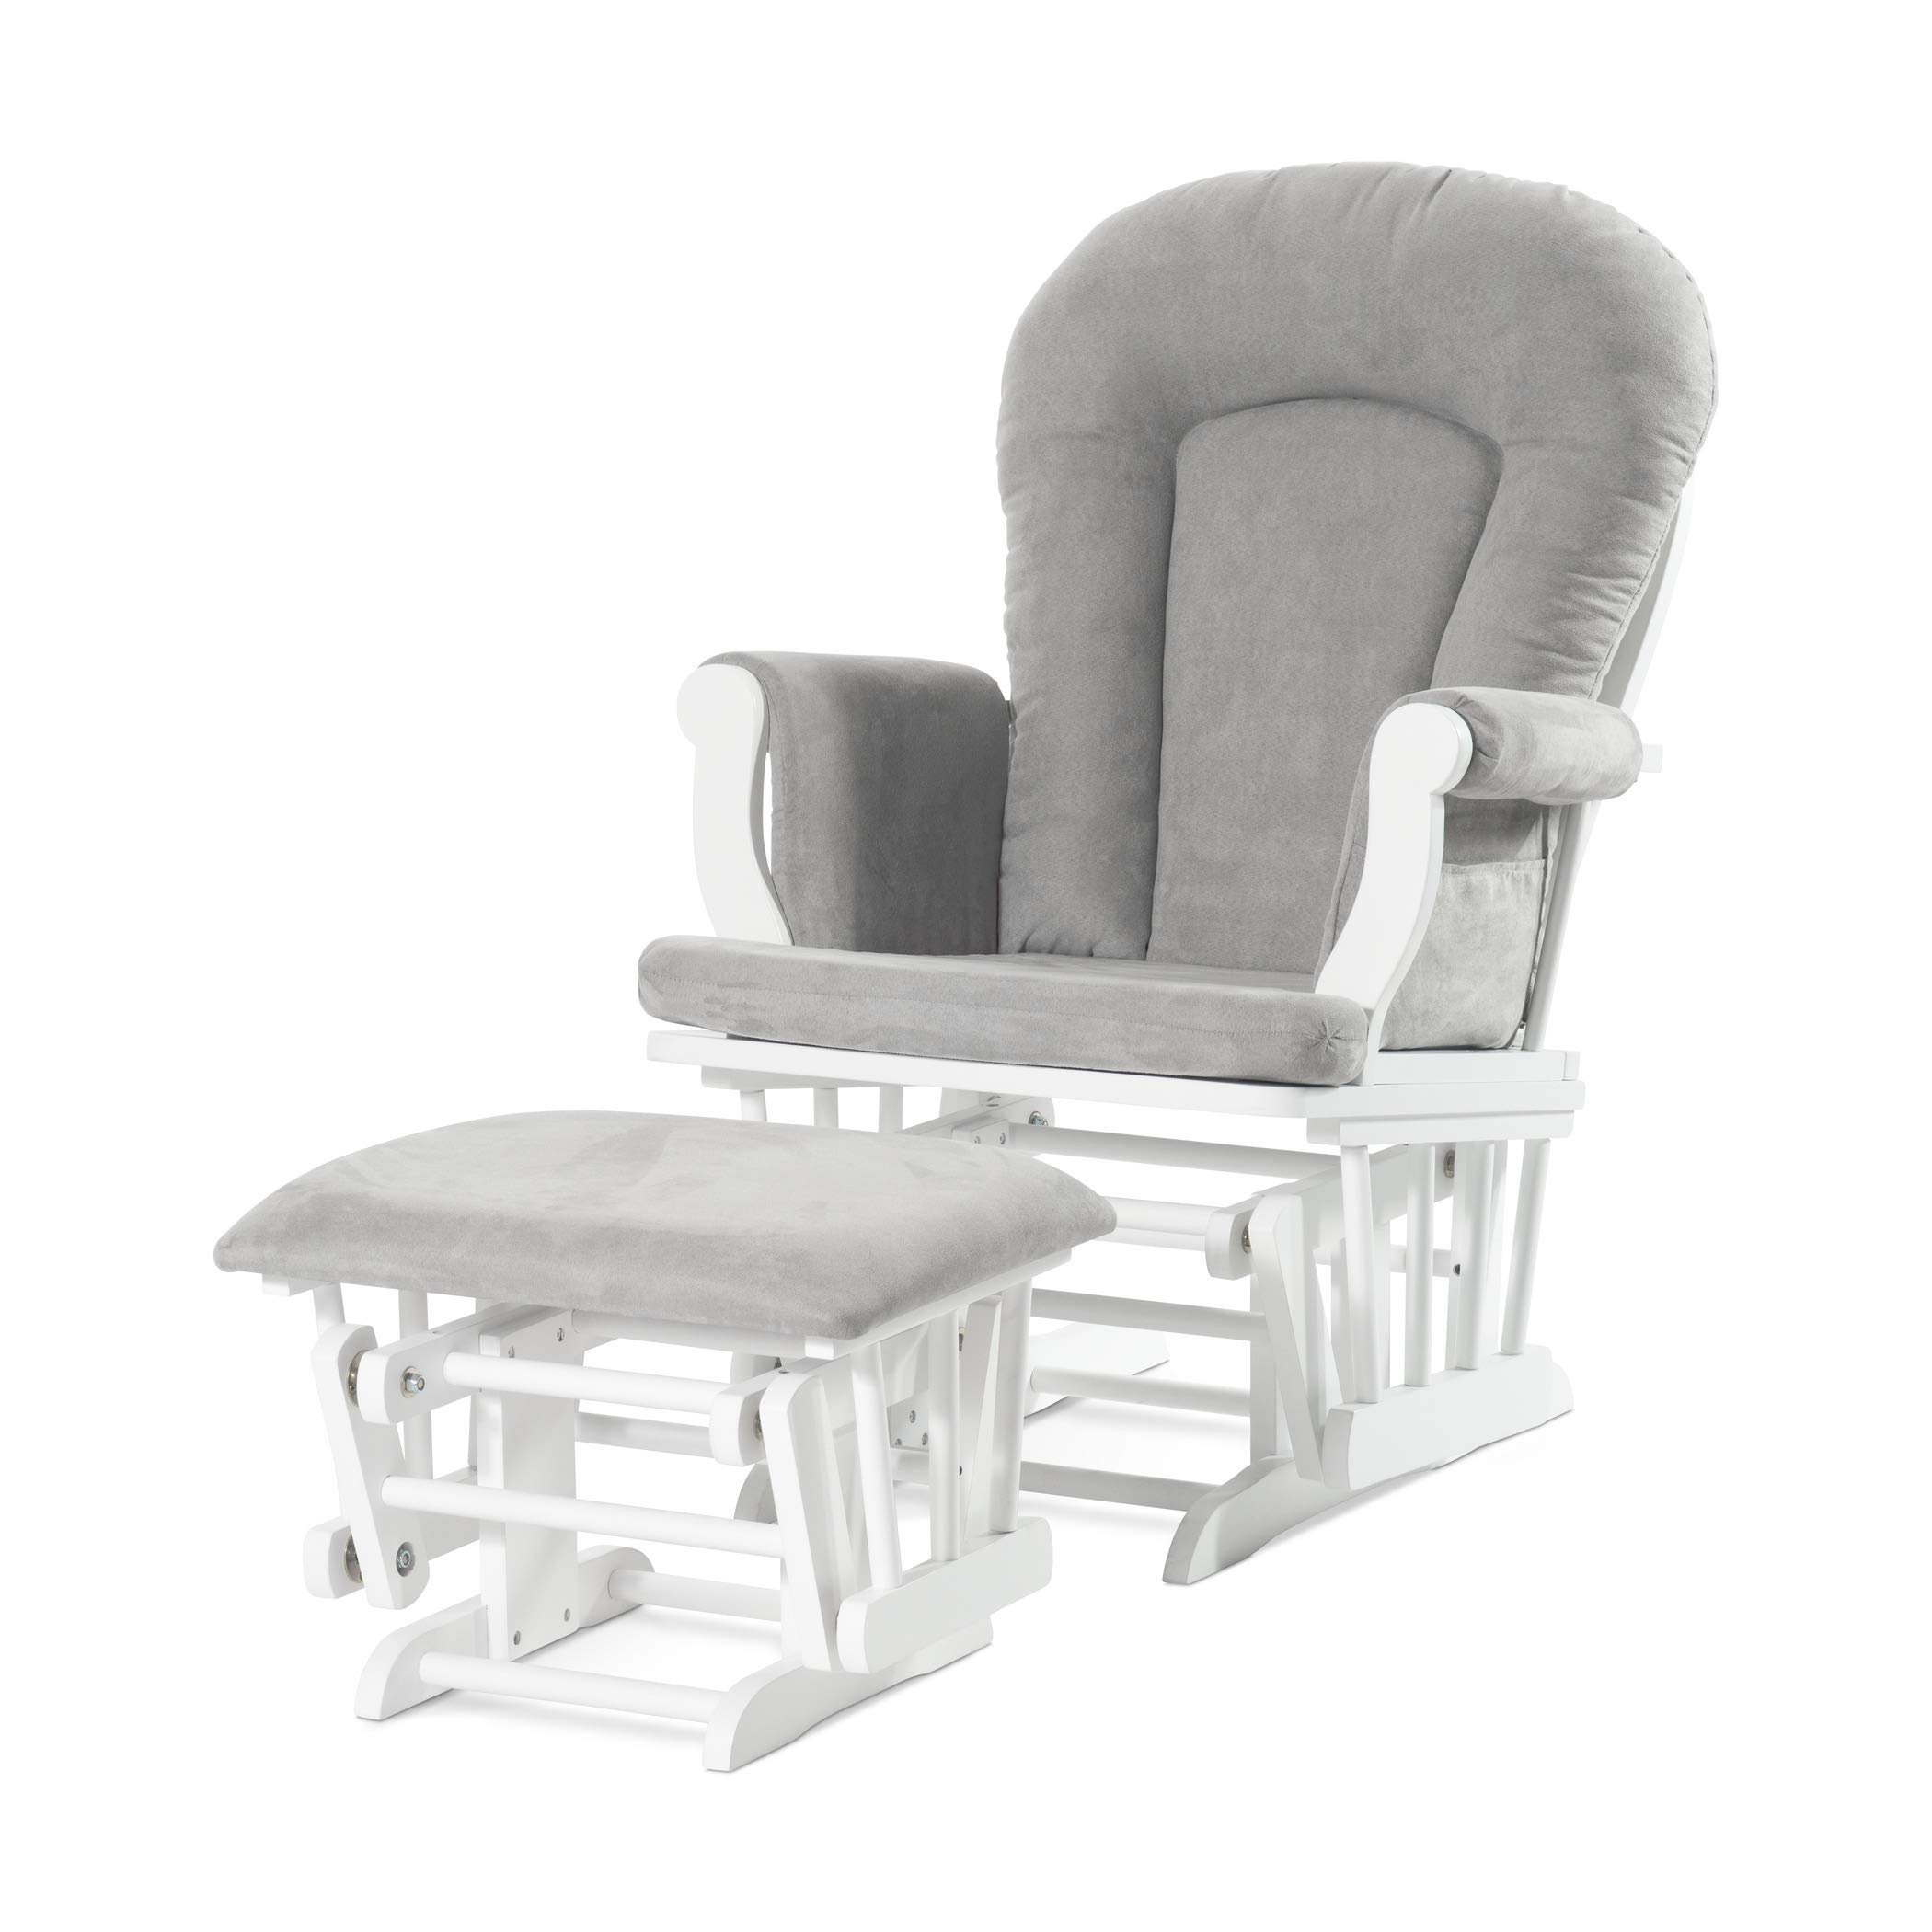 Forever Eclectic by Child Craft Cozy Glider and Ottoman, Matte White with Light Gray Cushion by Childcraft